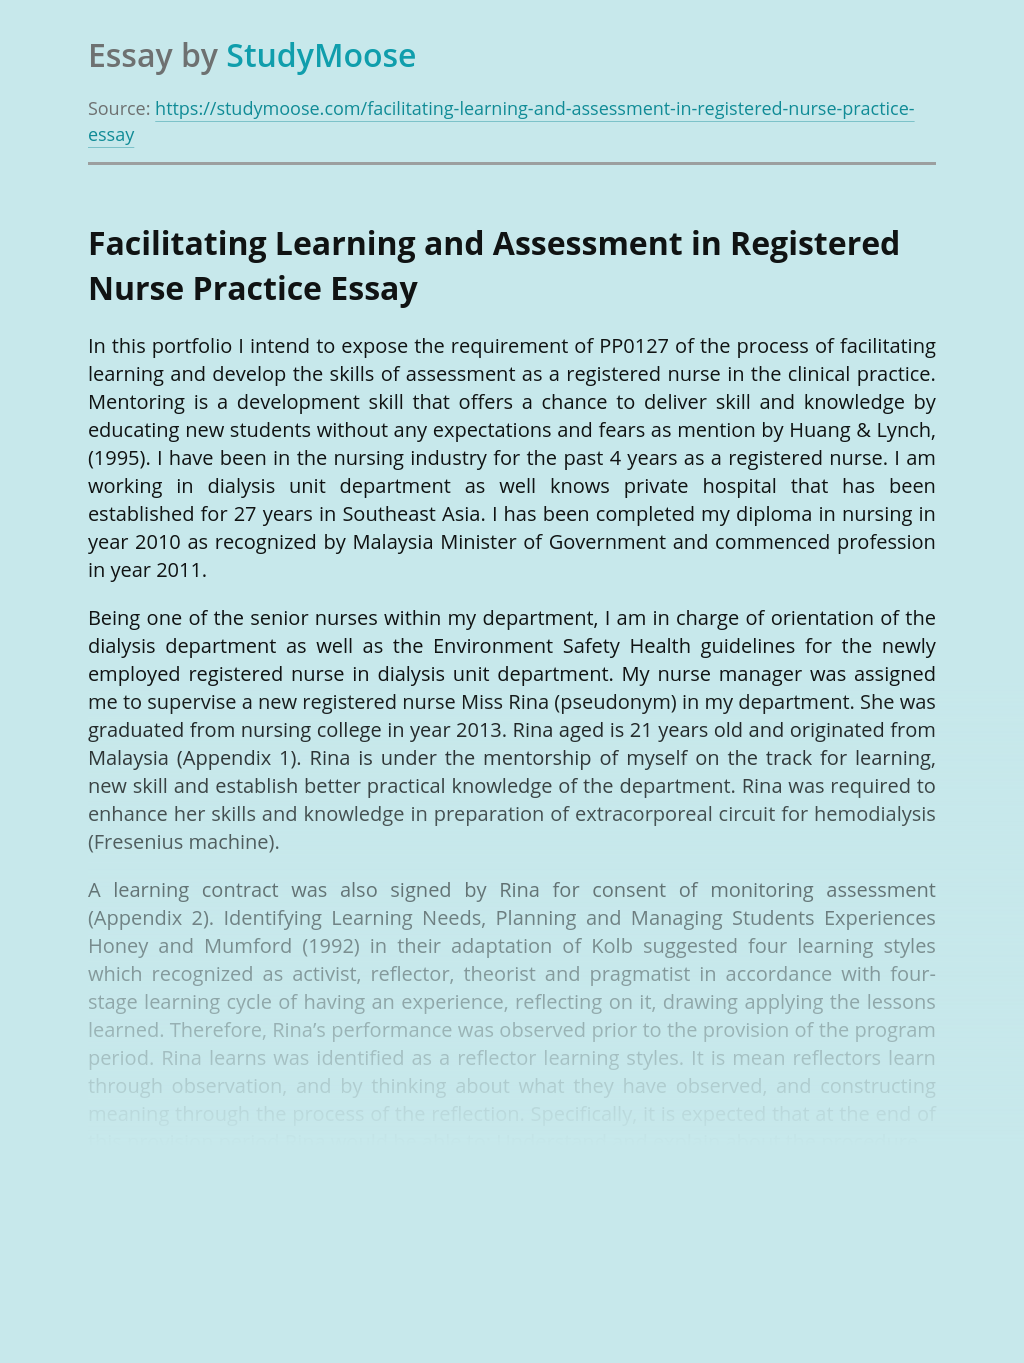 Facilitating Learning and Assessment in Registered Nurse Practice